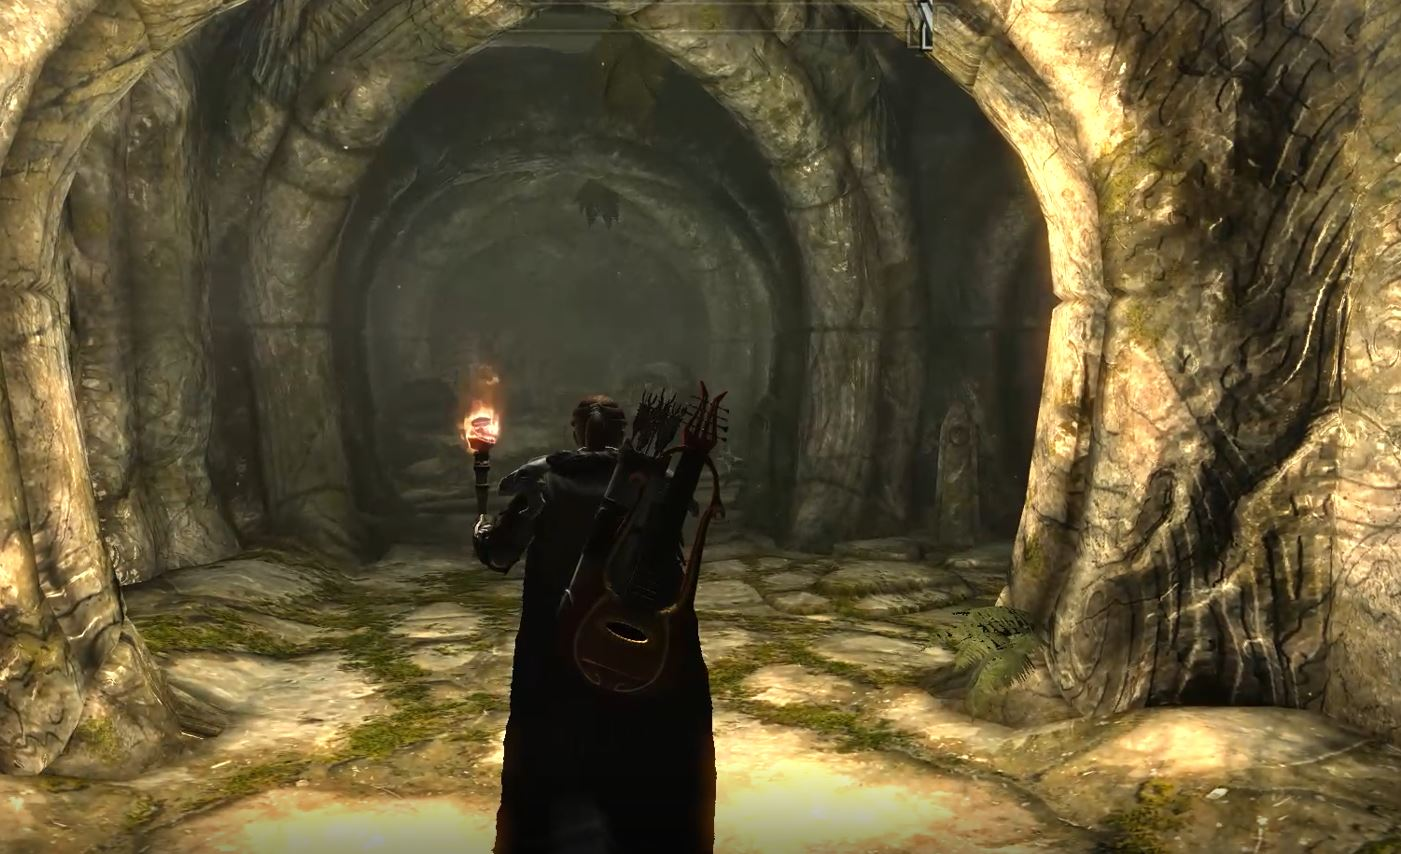 Explore Skyrim through the eyes of a wandering bard